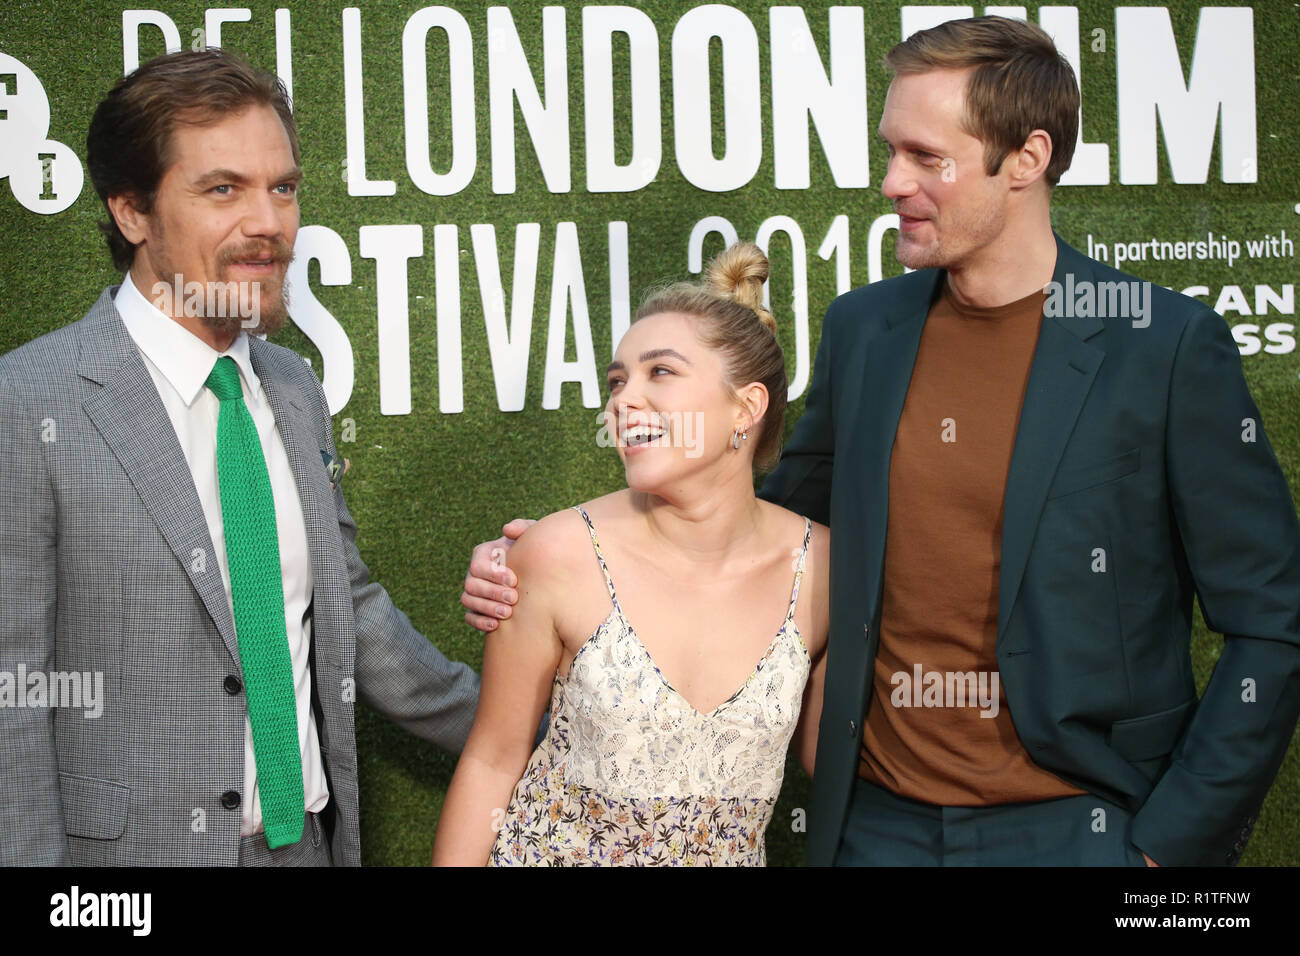 BFI London Film Festival The Little Drummer Girl premiere - Arrivals  Featuring: Michael Shannon, Florence Pugh, Alexander Skarsgard Where: London, United Kingdom When: 14 Oct 2018 Credit: Lia Toby/WENN.com - Stock Image